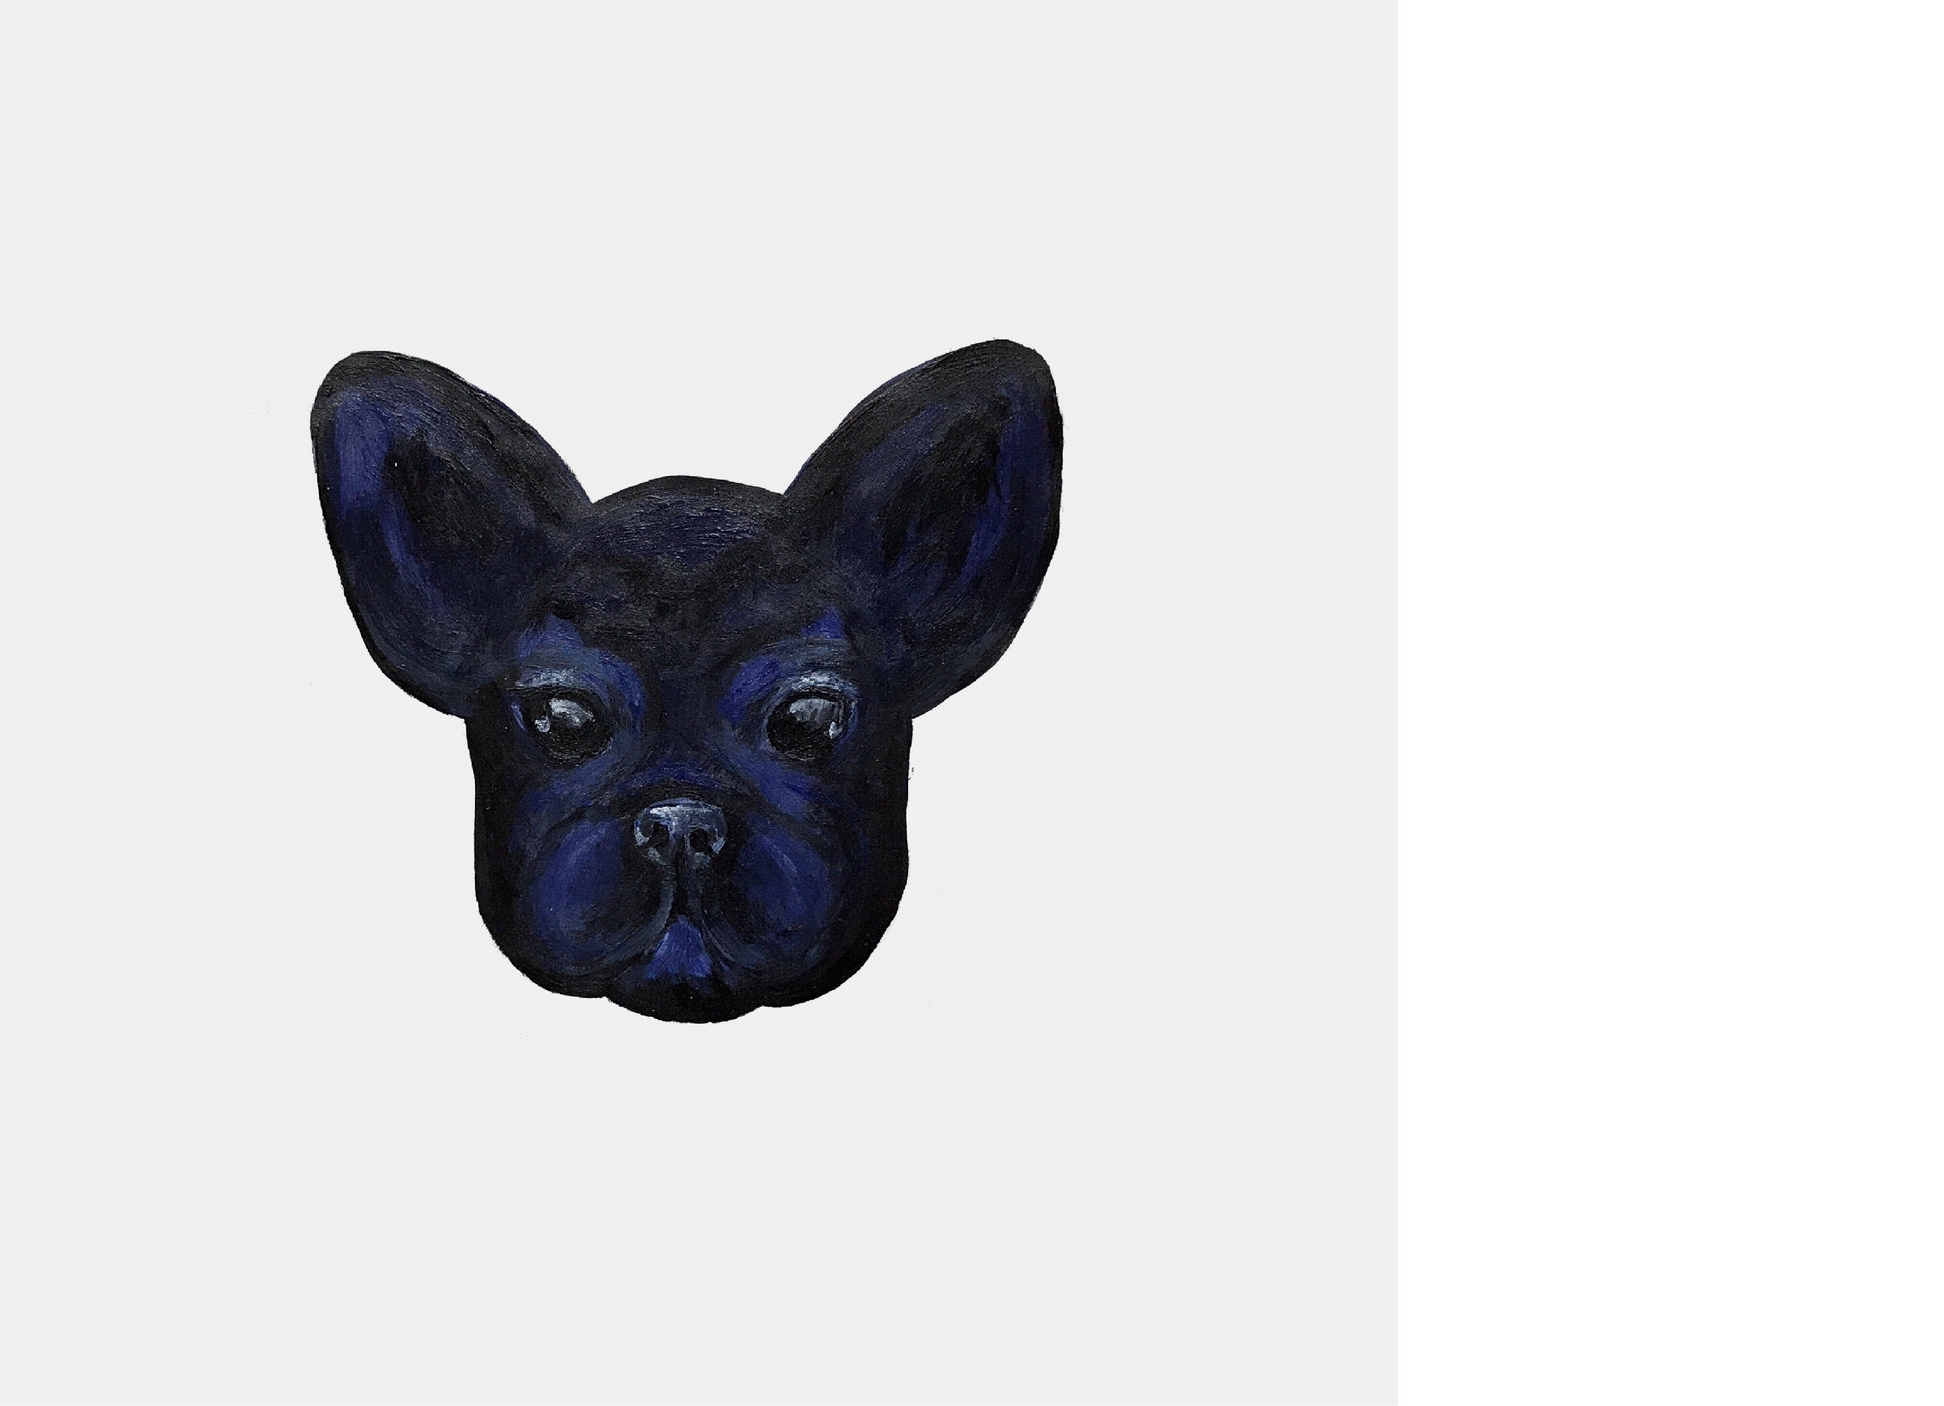 Frenchie  painted by Mathilde Gilling, 2017